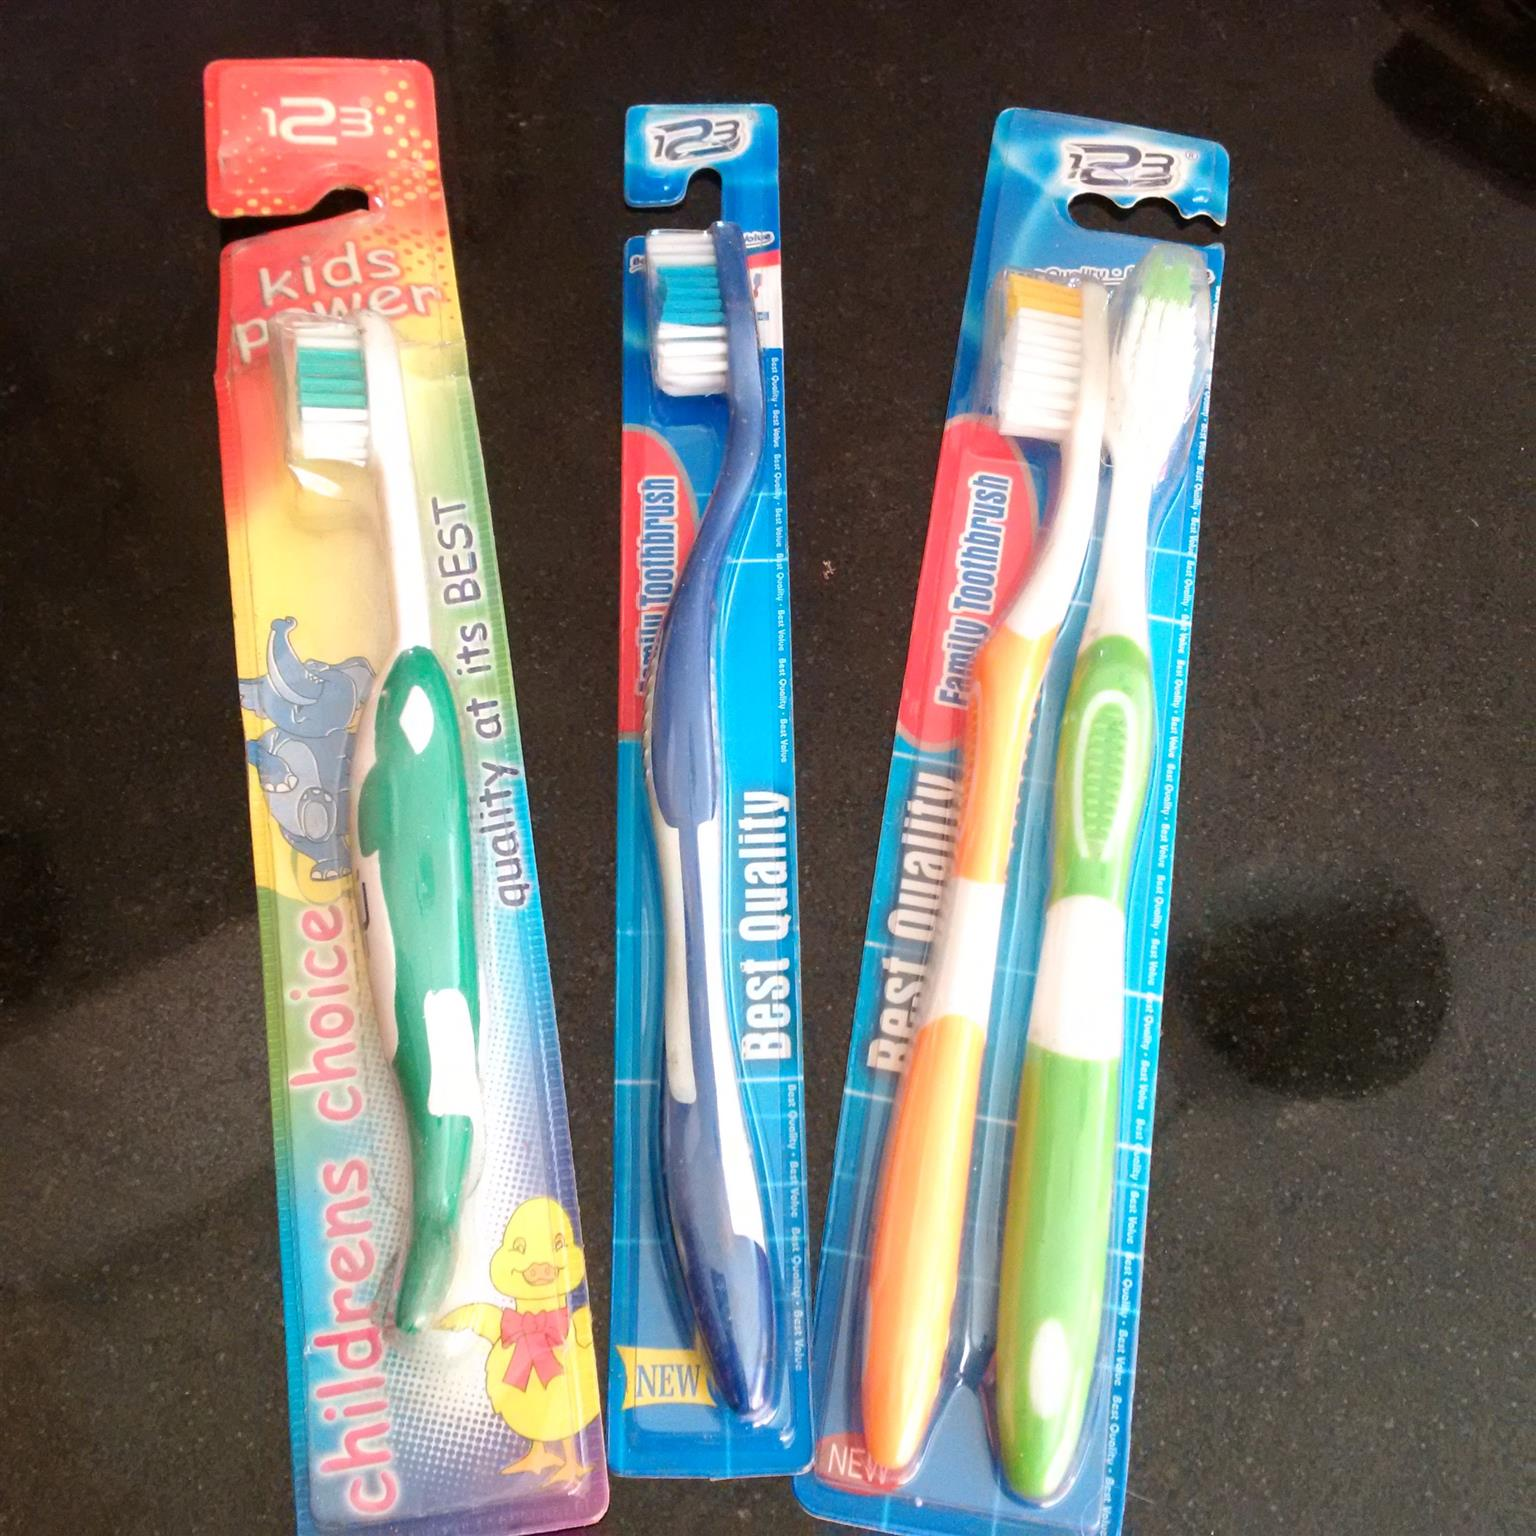 adults and kiddies toothbrushes